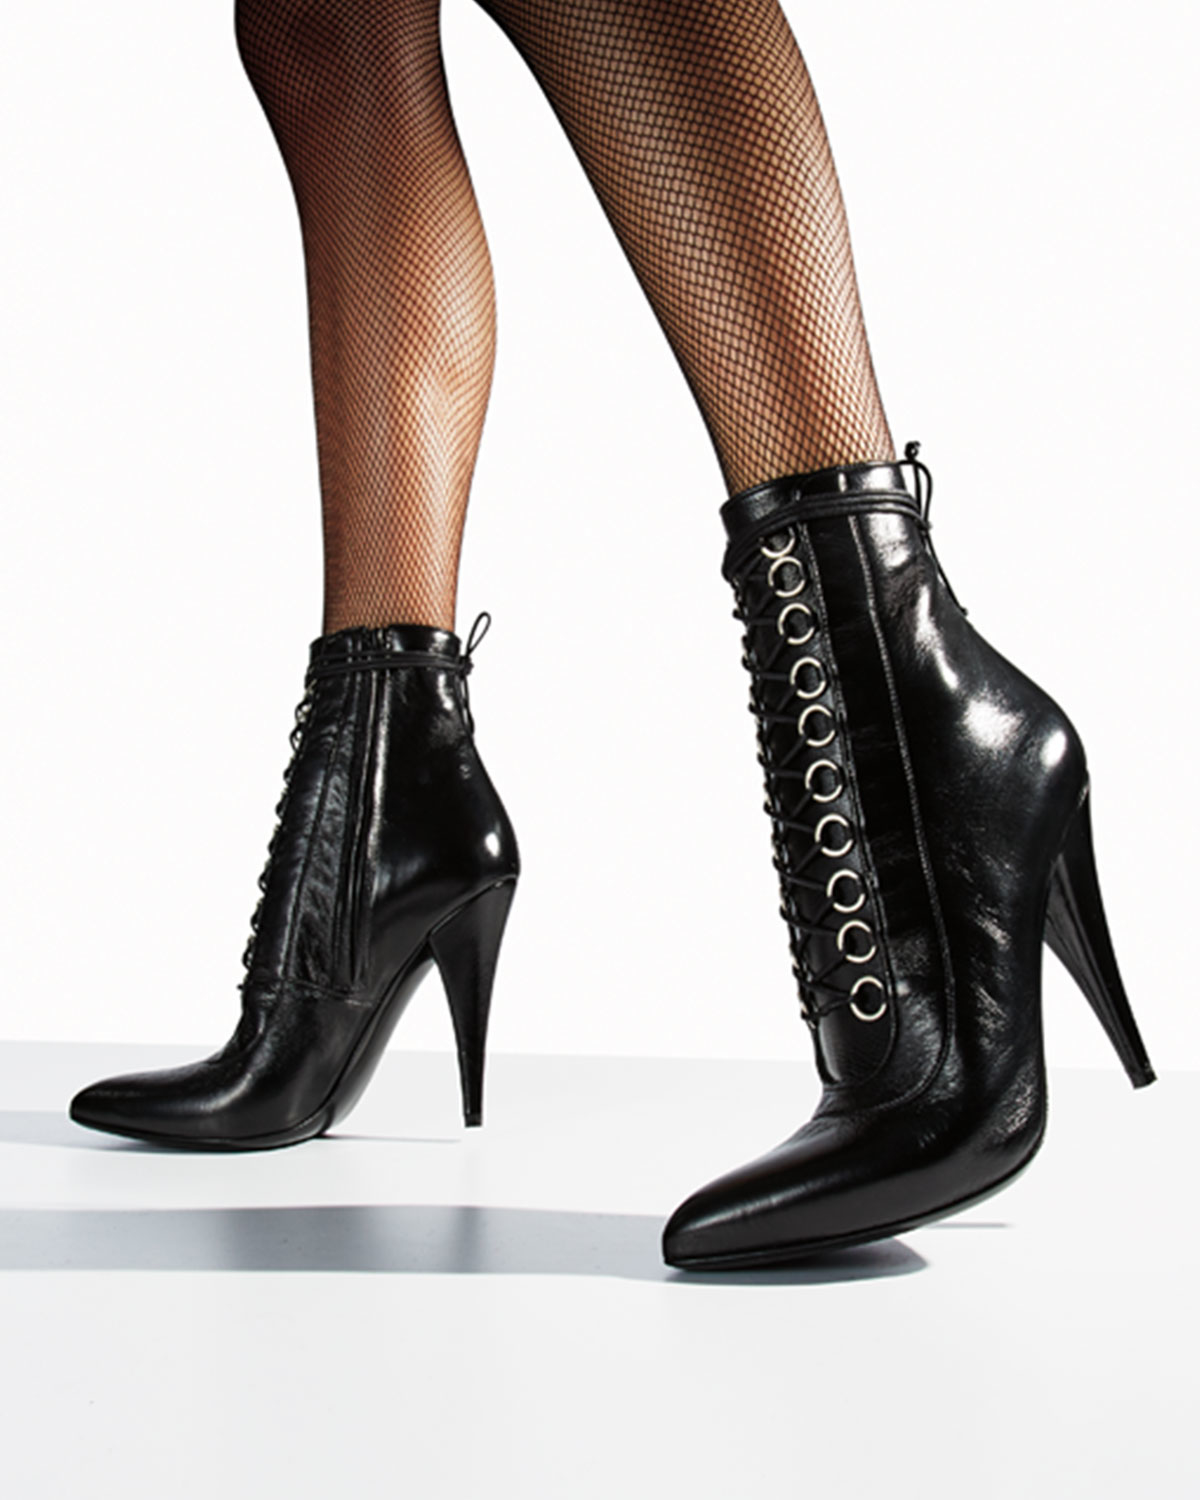 Lyst - Saint Laurent Fetish Leather Lace-up Bootie in Black af3a4e1e2254b